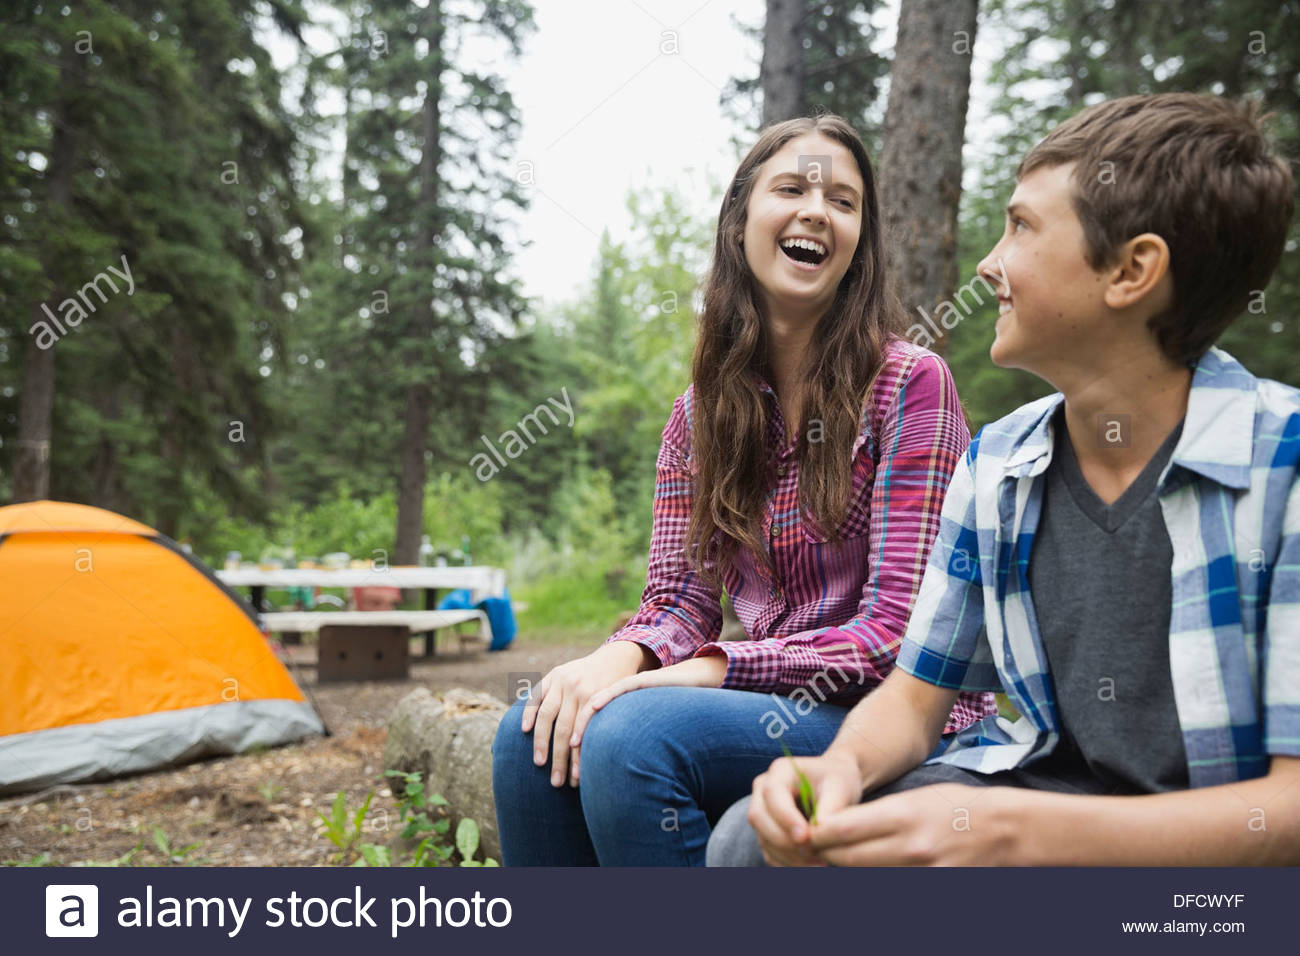 Cheerful siblings sitting at campsite - Stock Image